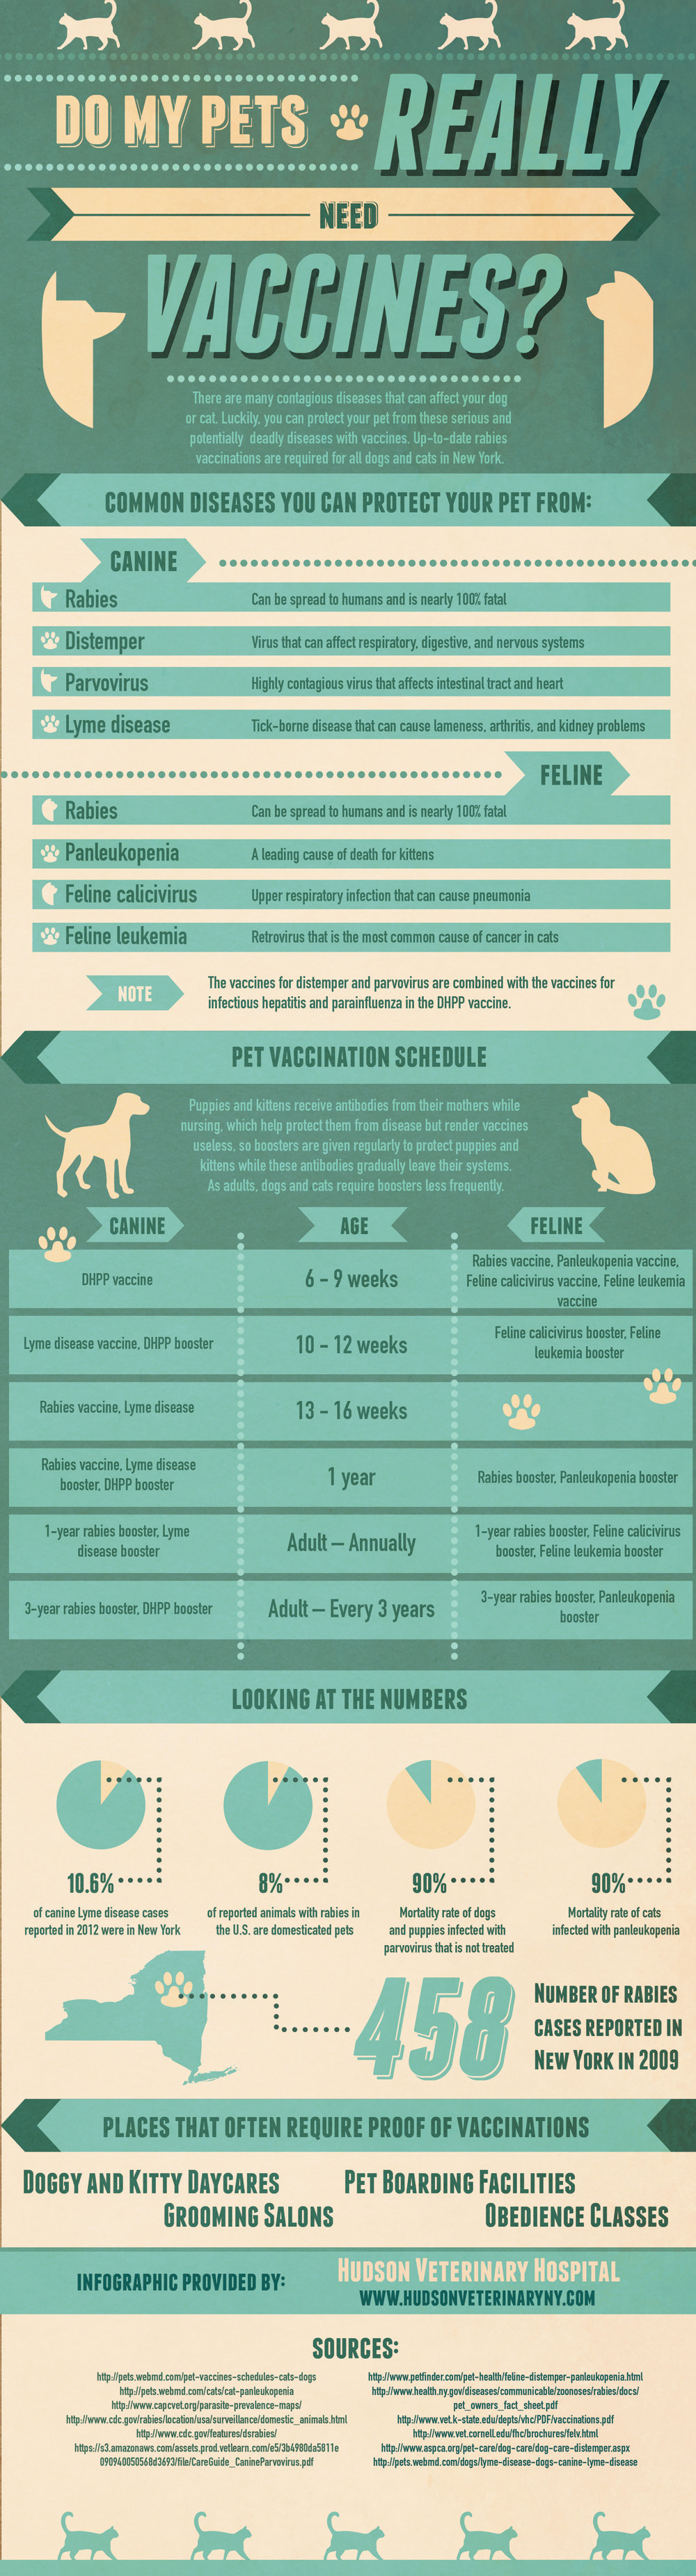 Do-my-pets-really-need-vaccination